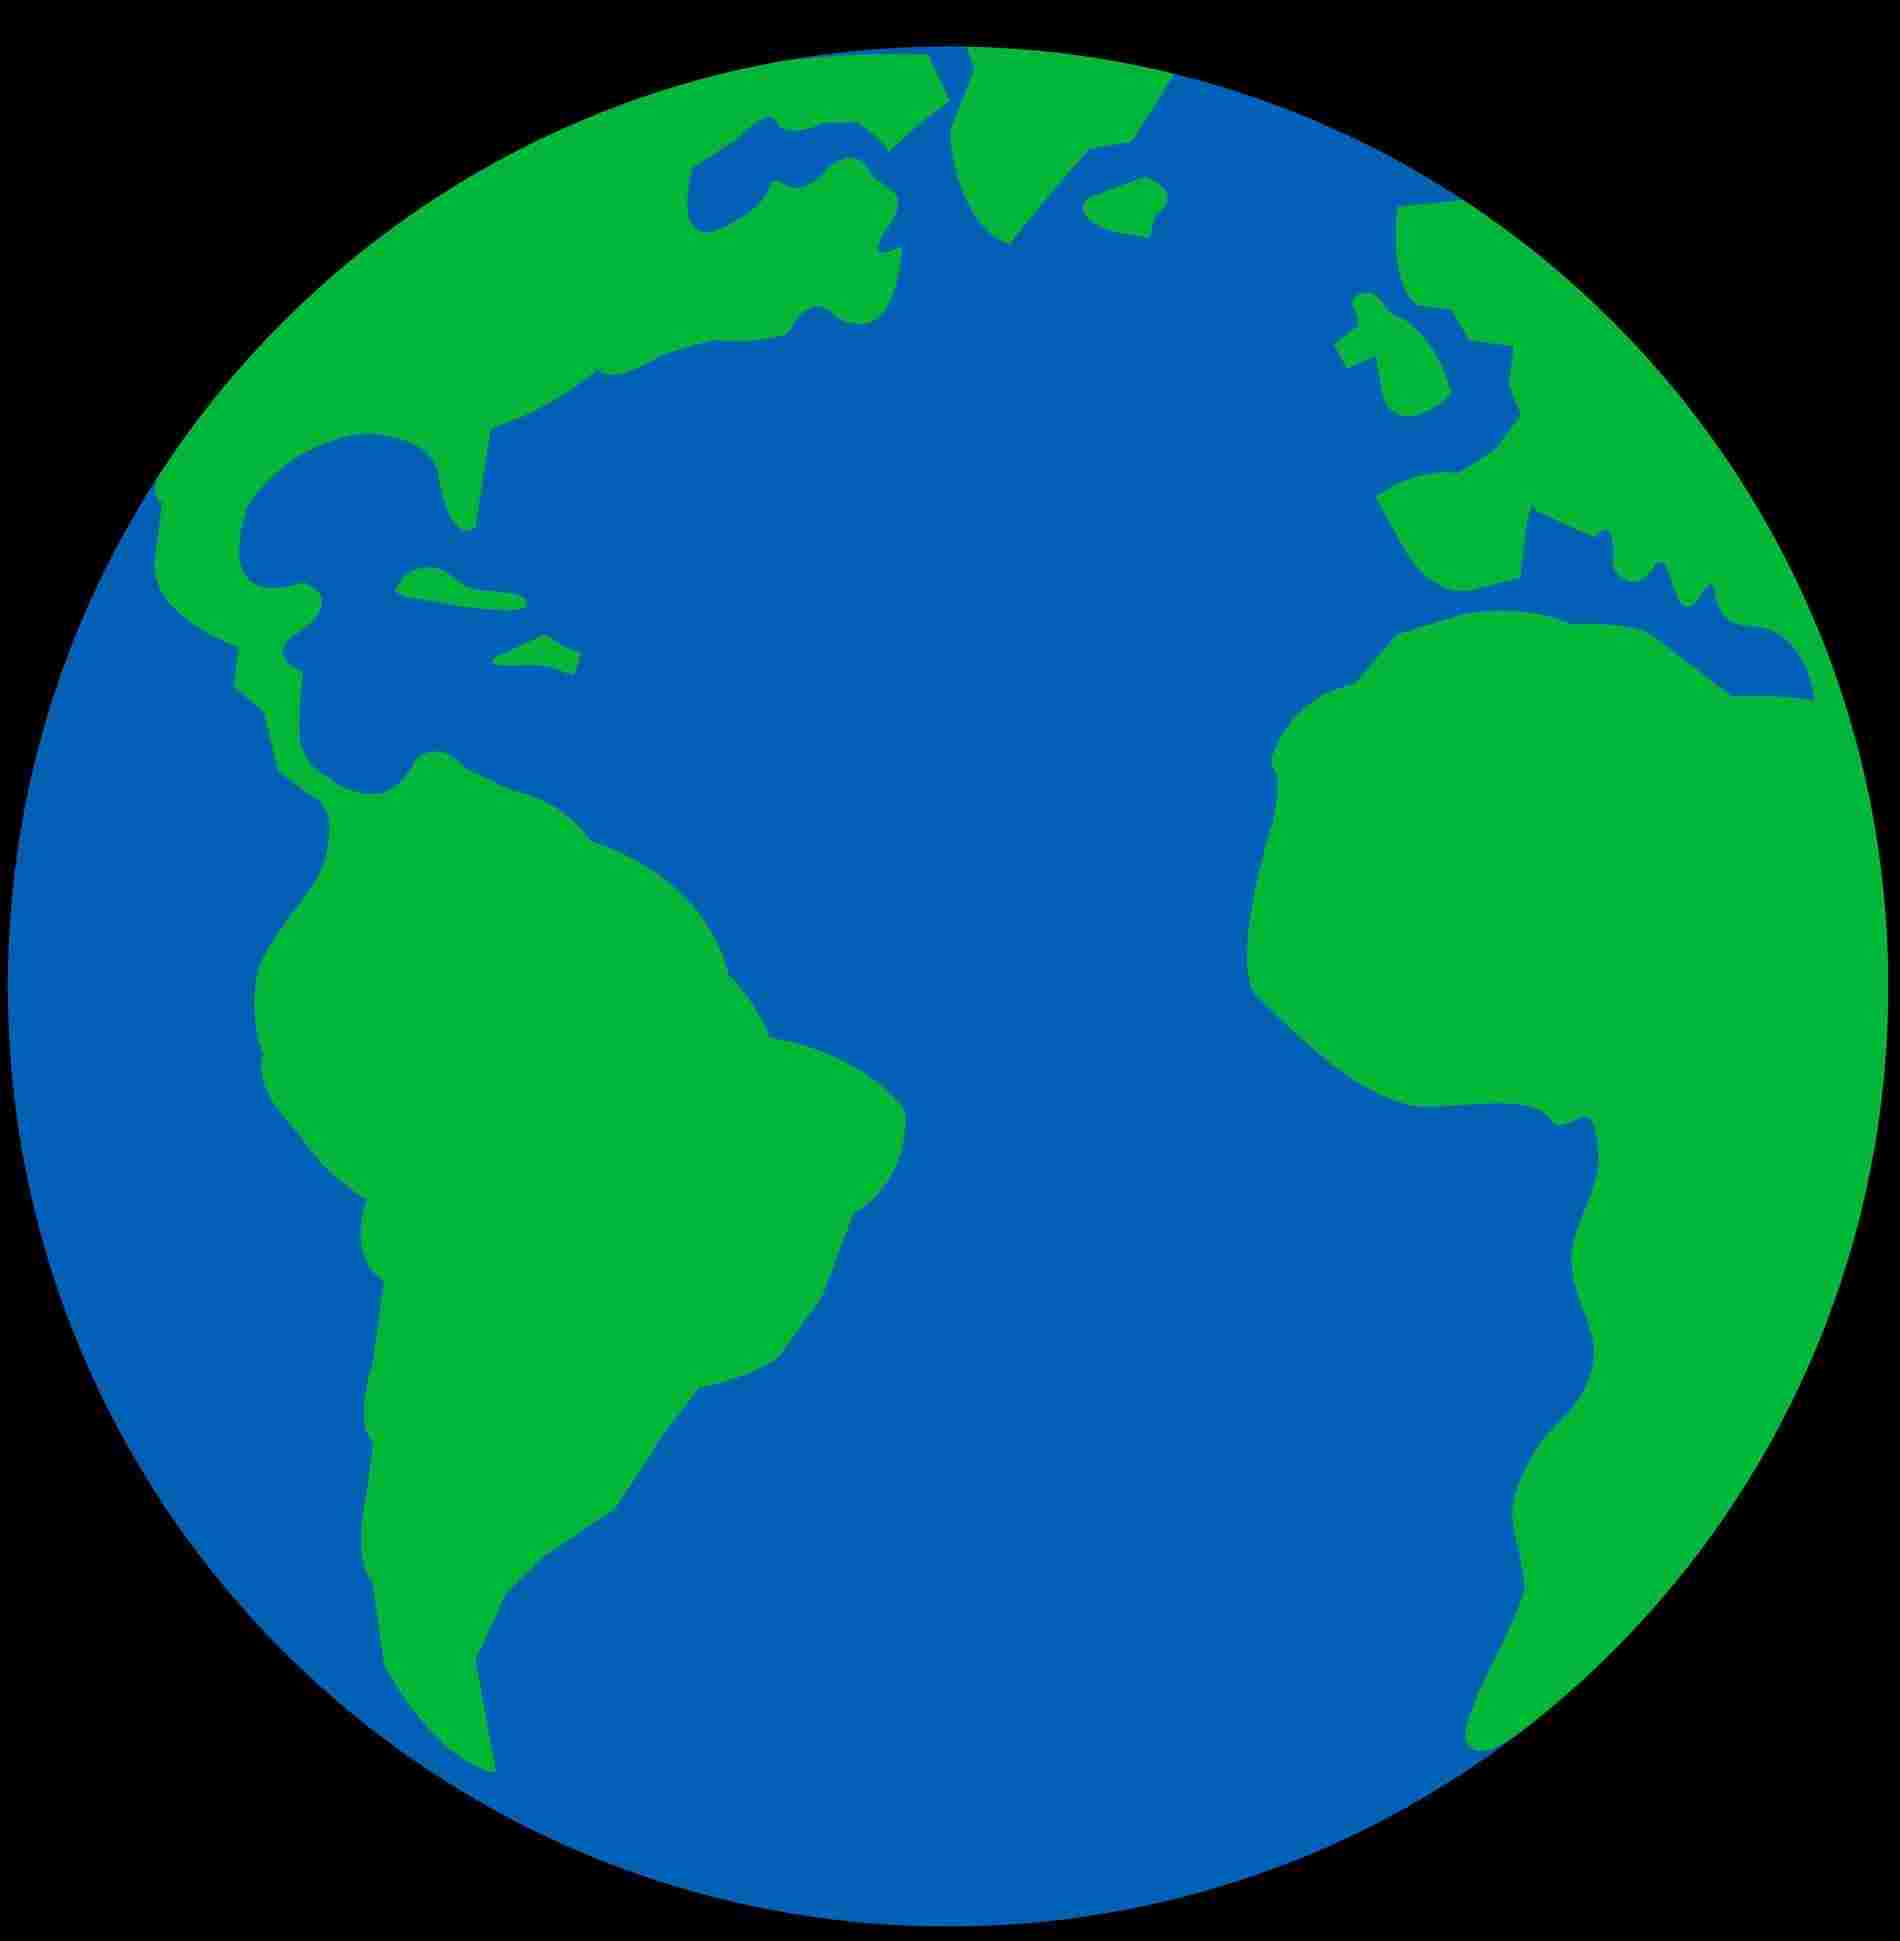 1900x1941 Rhclipartxtrascom Earth At Getdrawingscom For Personal Use